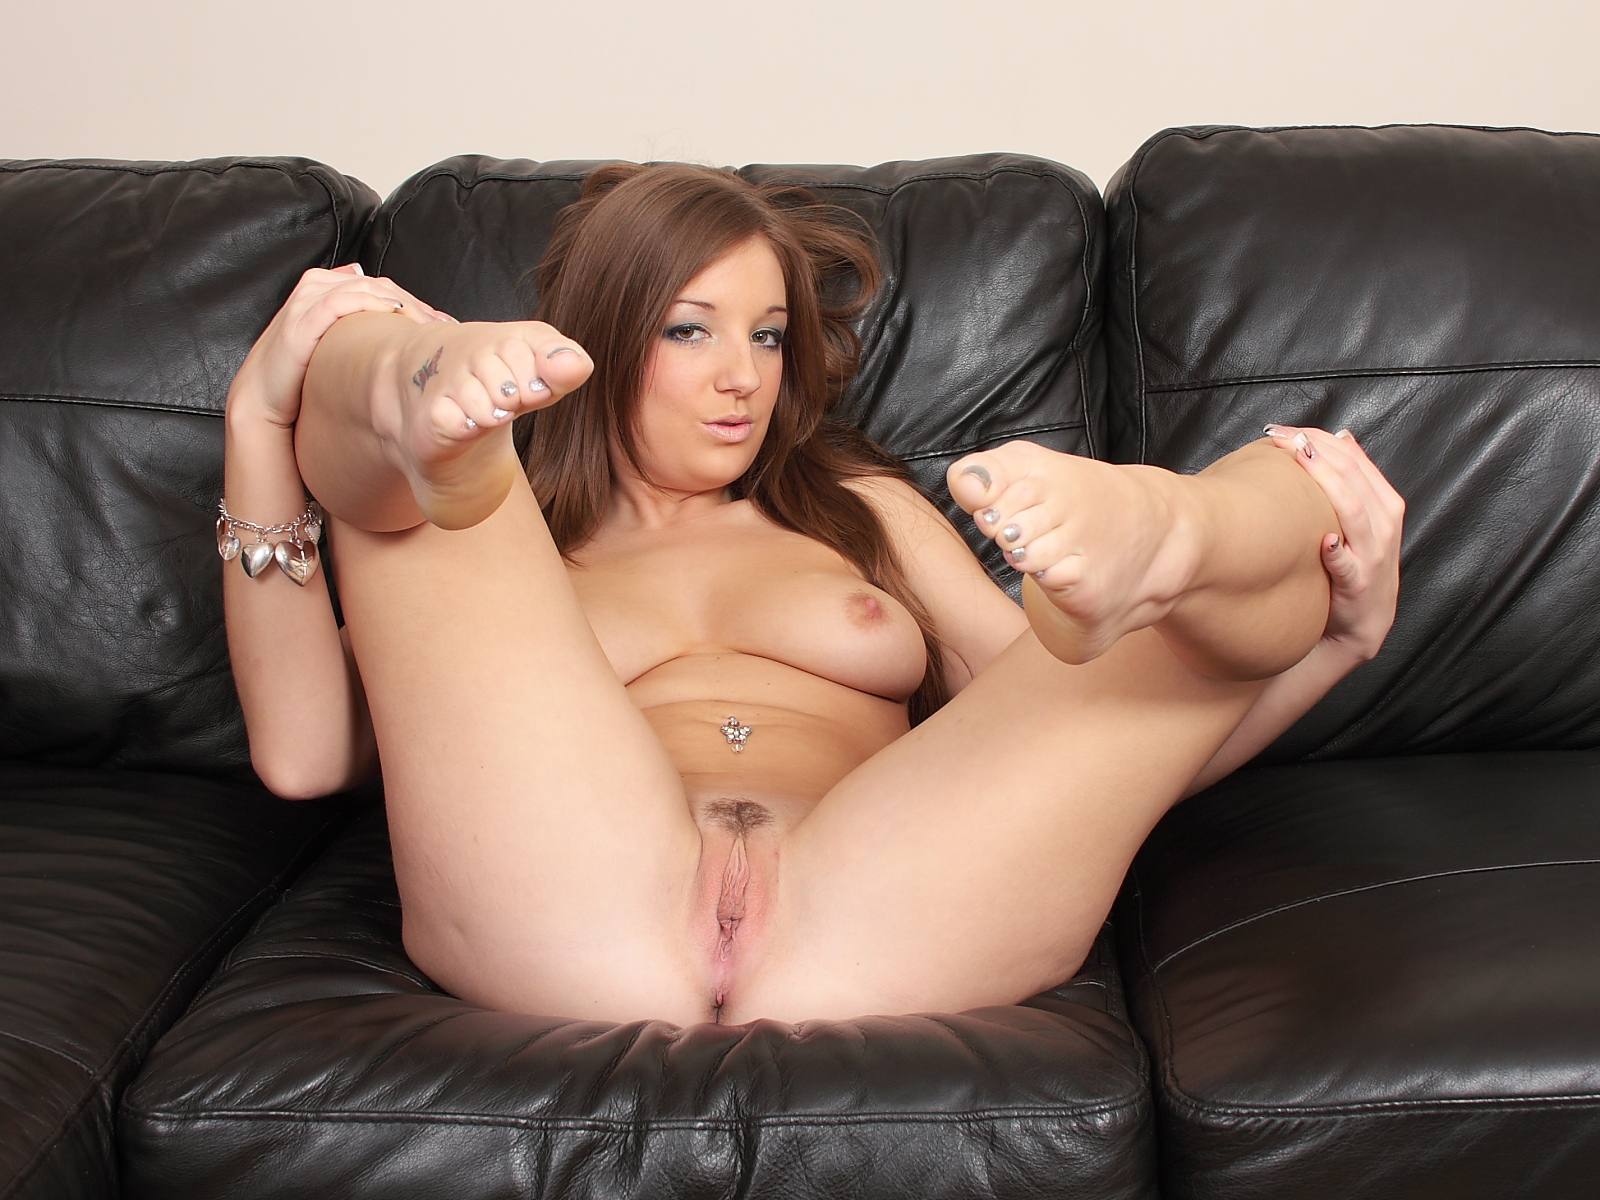 Pussy on the couch